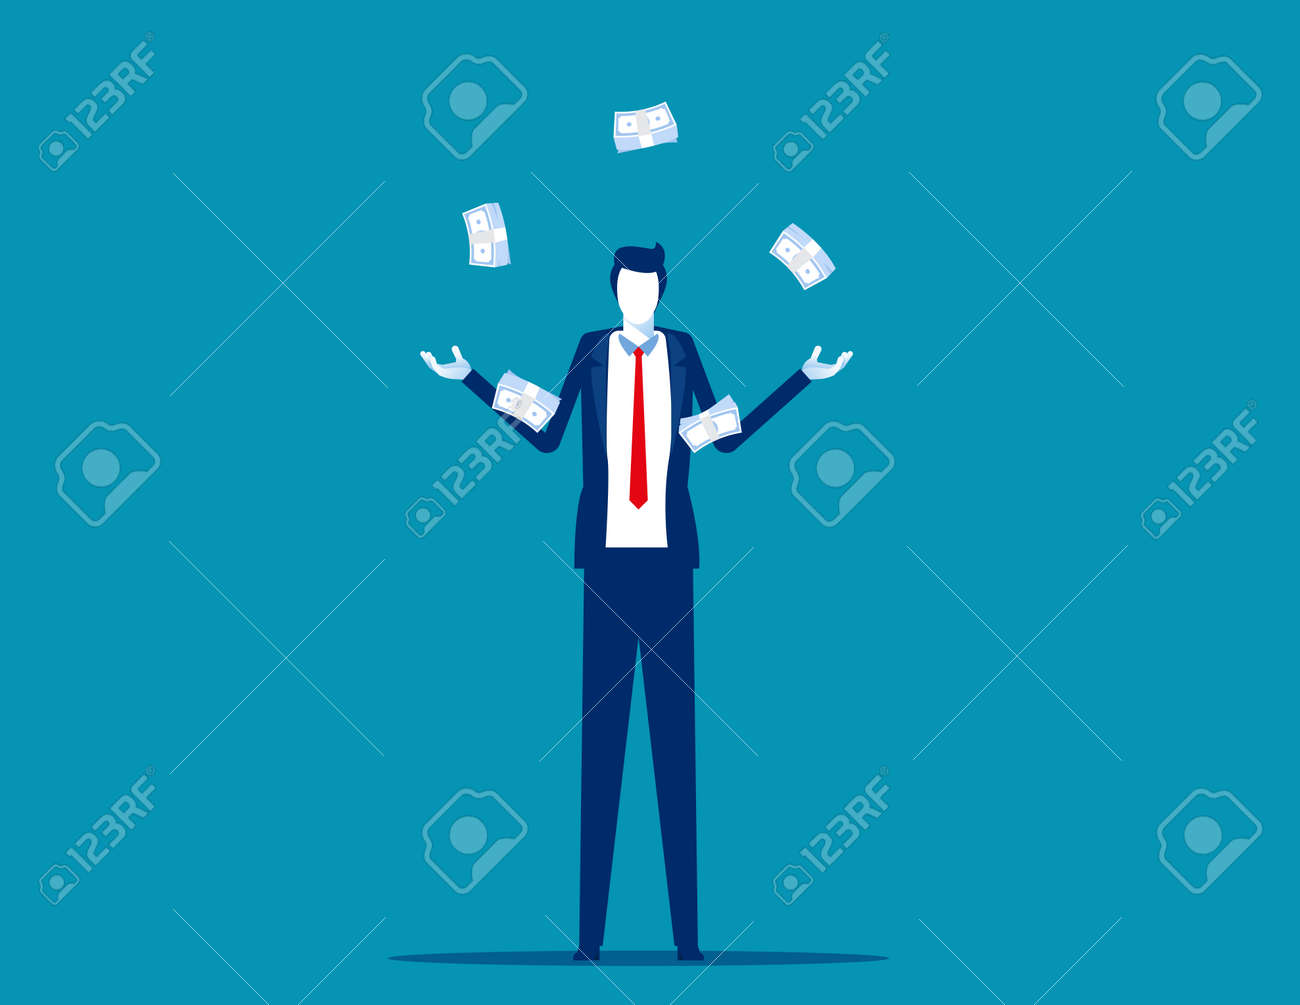 Skilled business person standing juggling money cash - 173345503